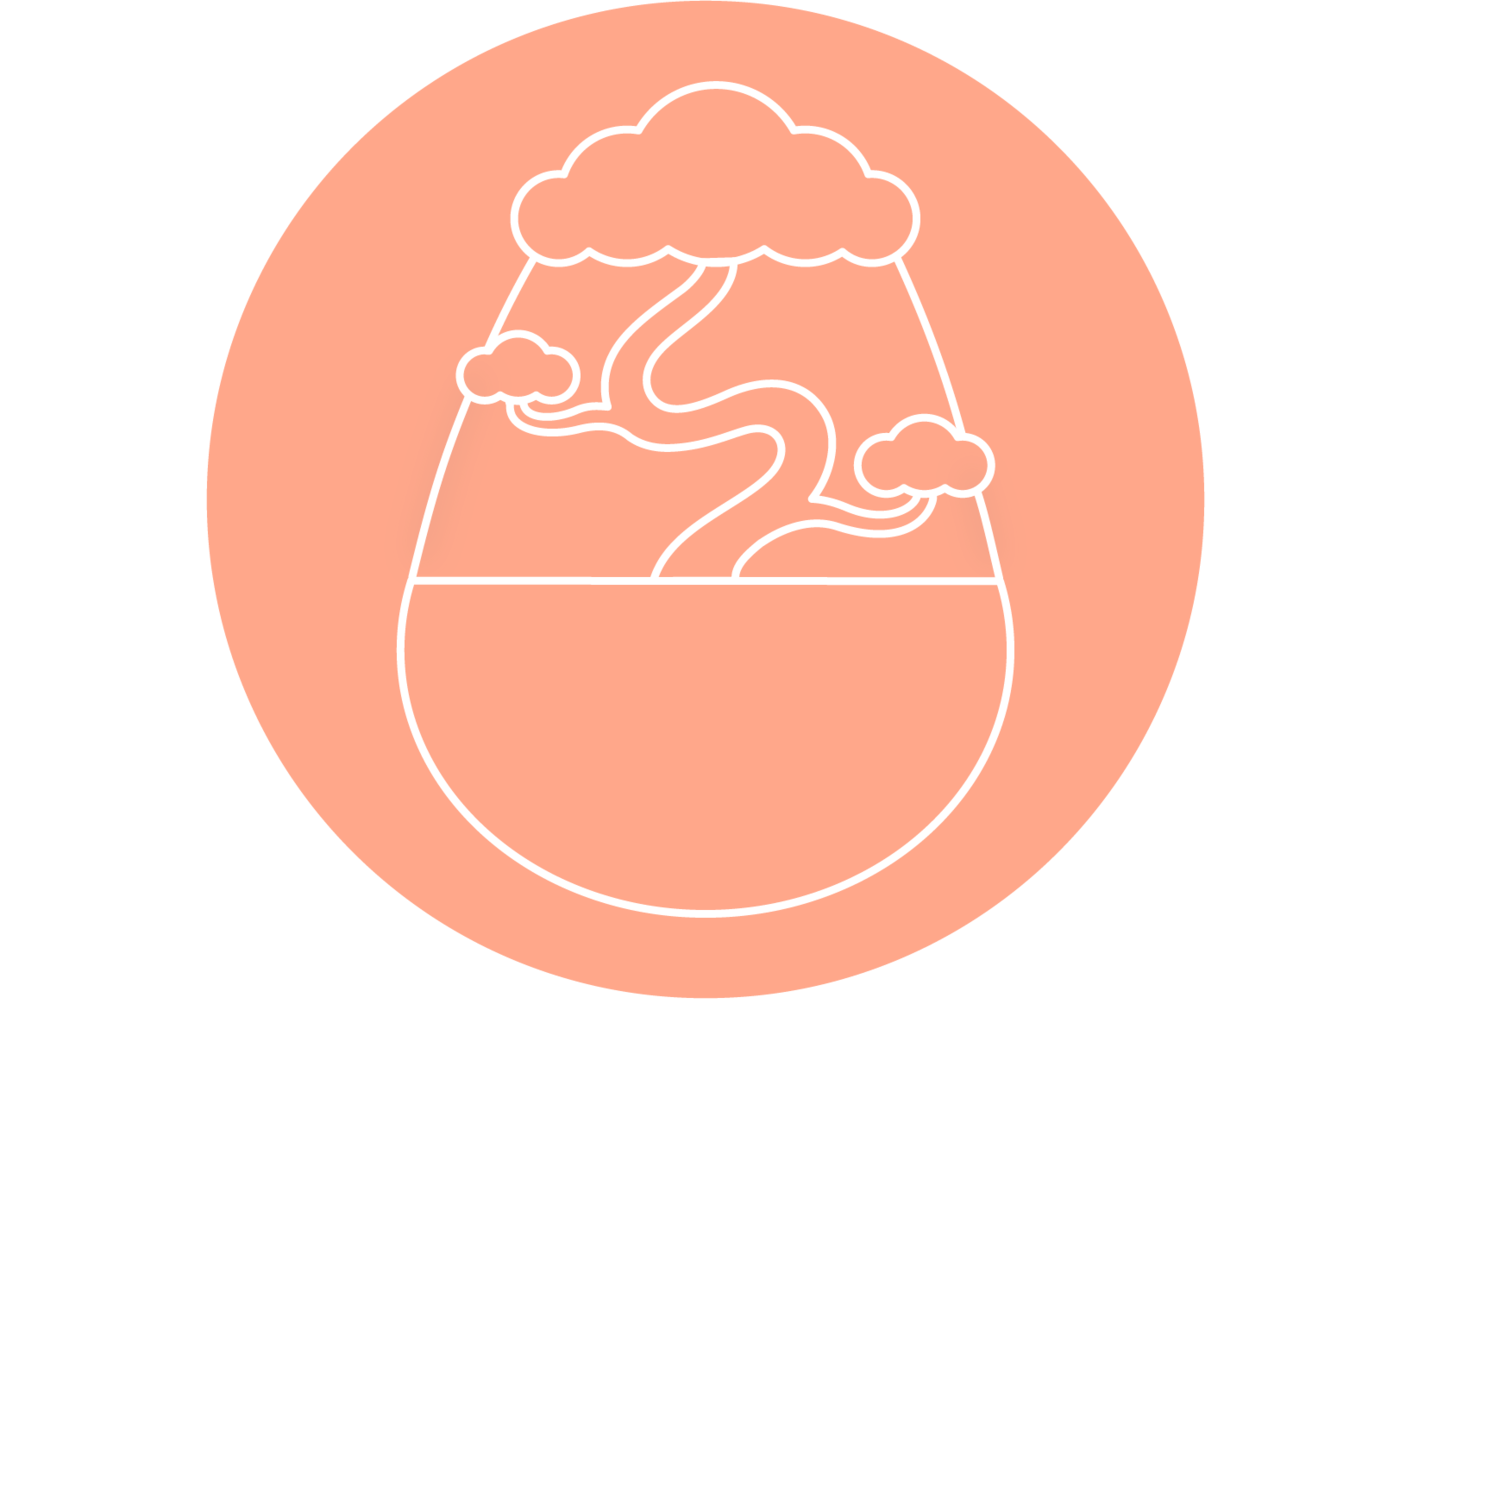 Bonsai Kakigori